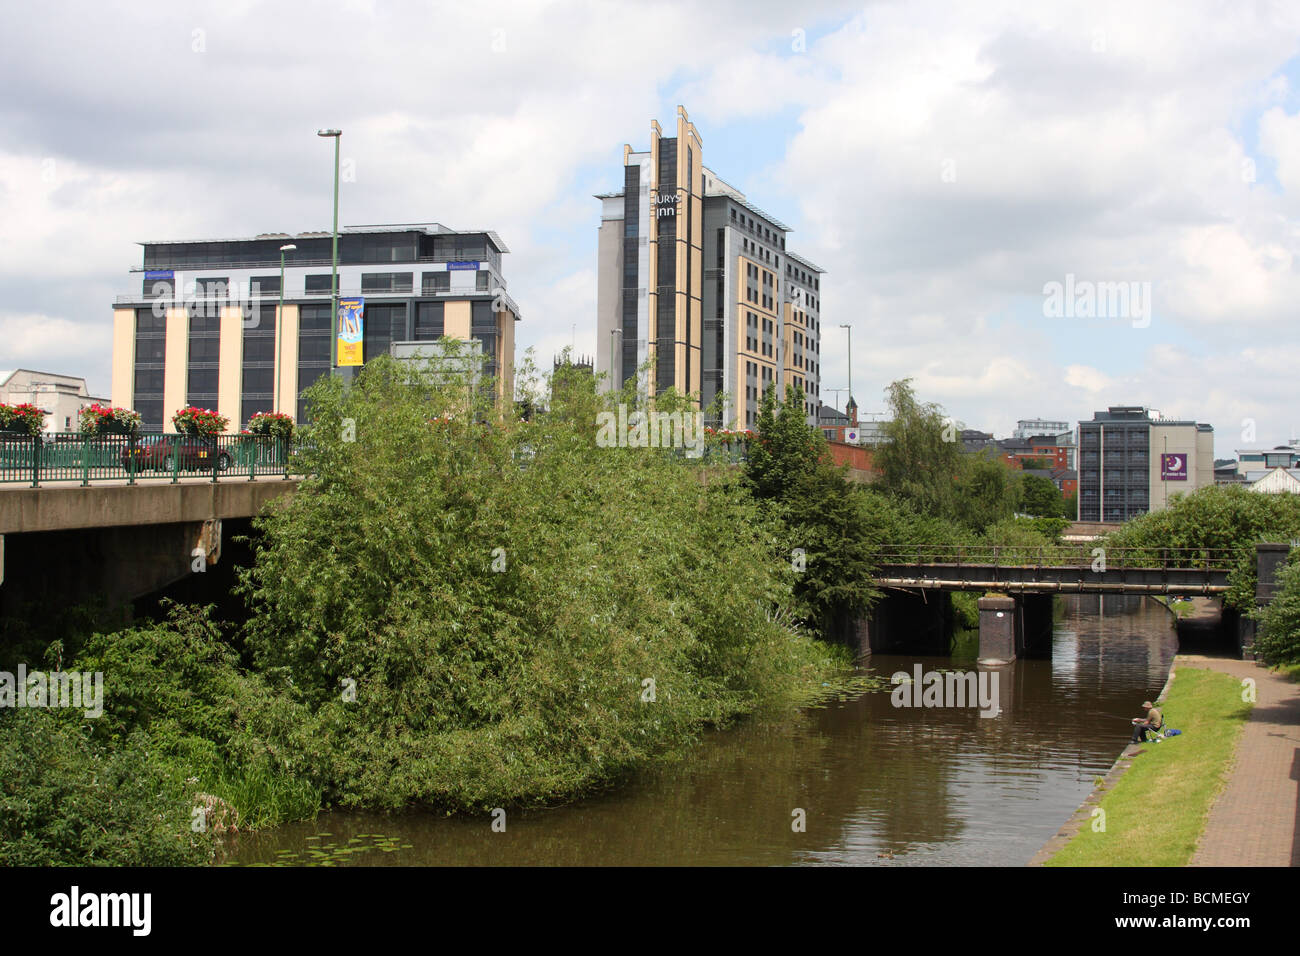 A canal and towpath, London Road, Nottingham, England, U.K. - Stock Image